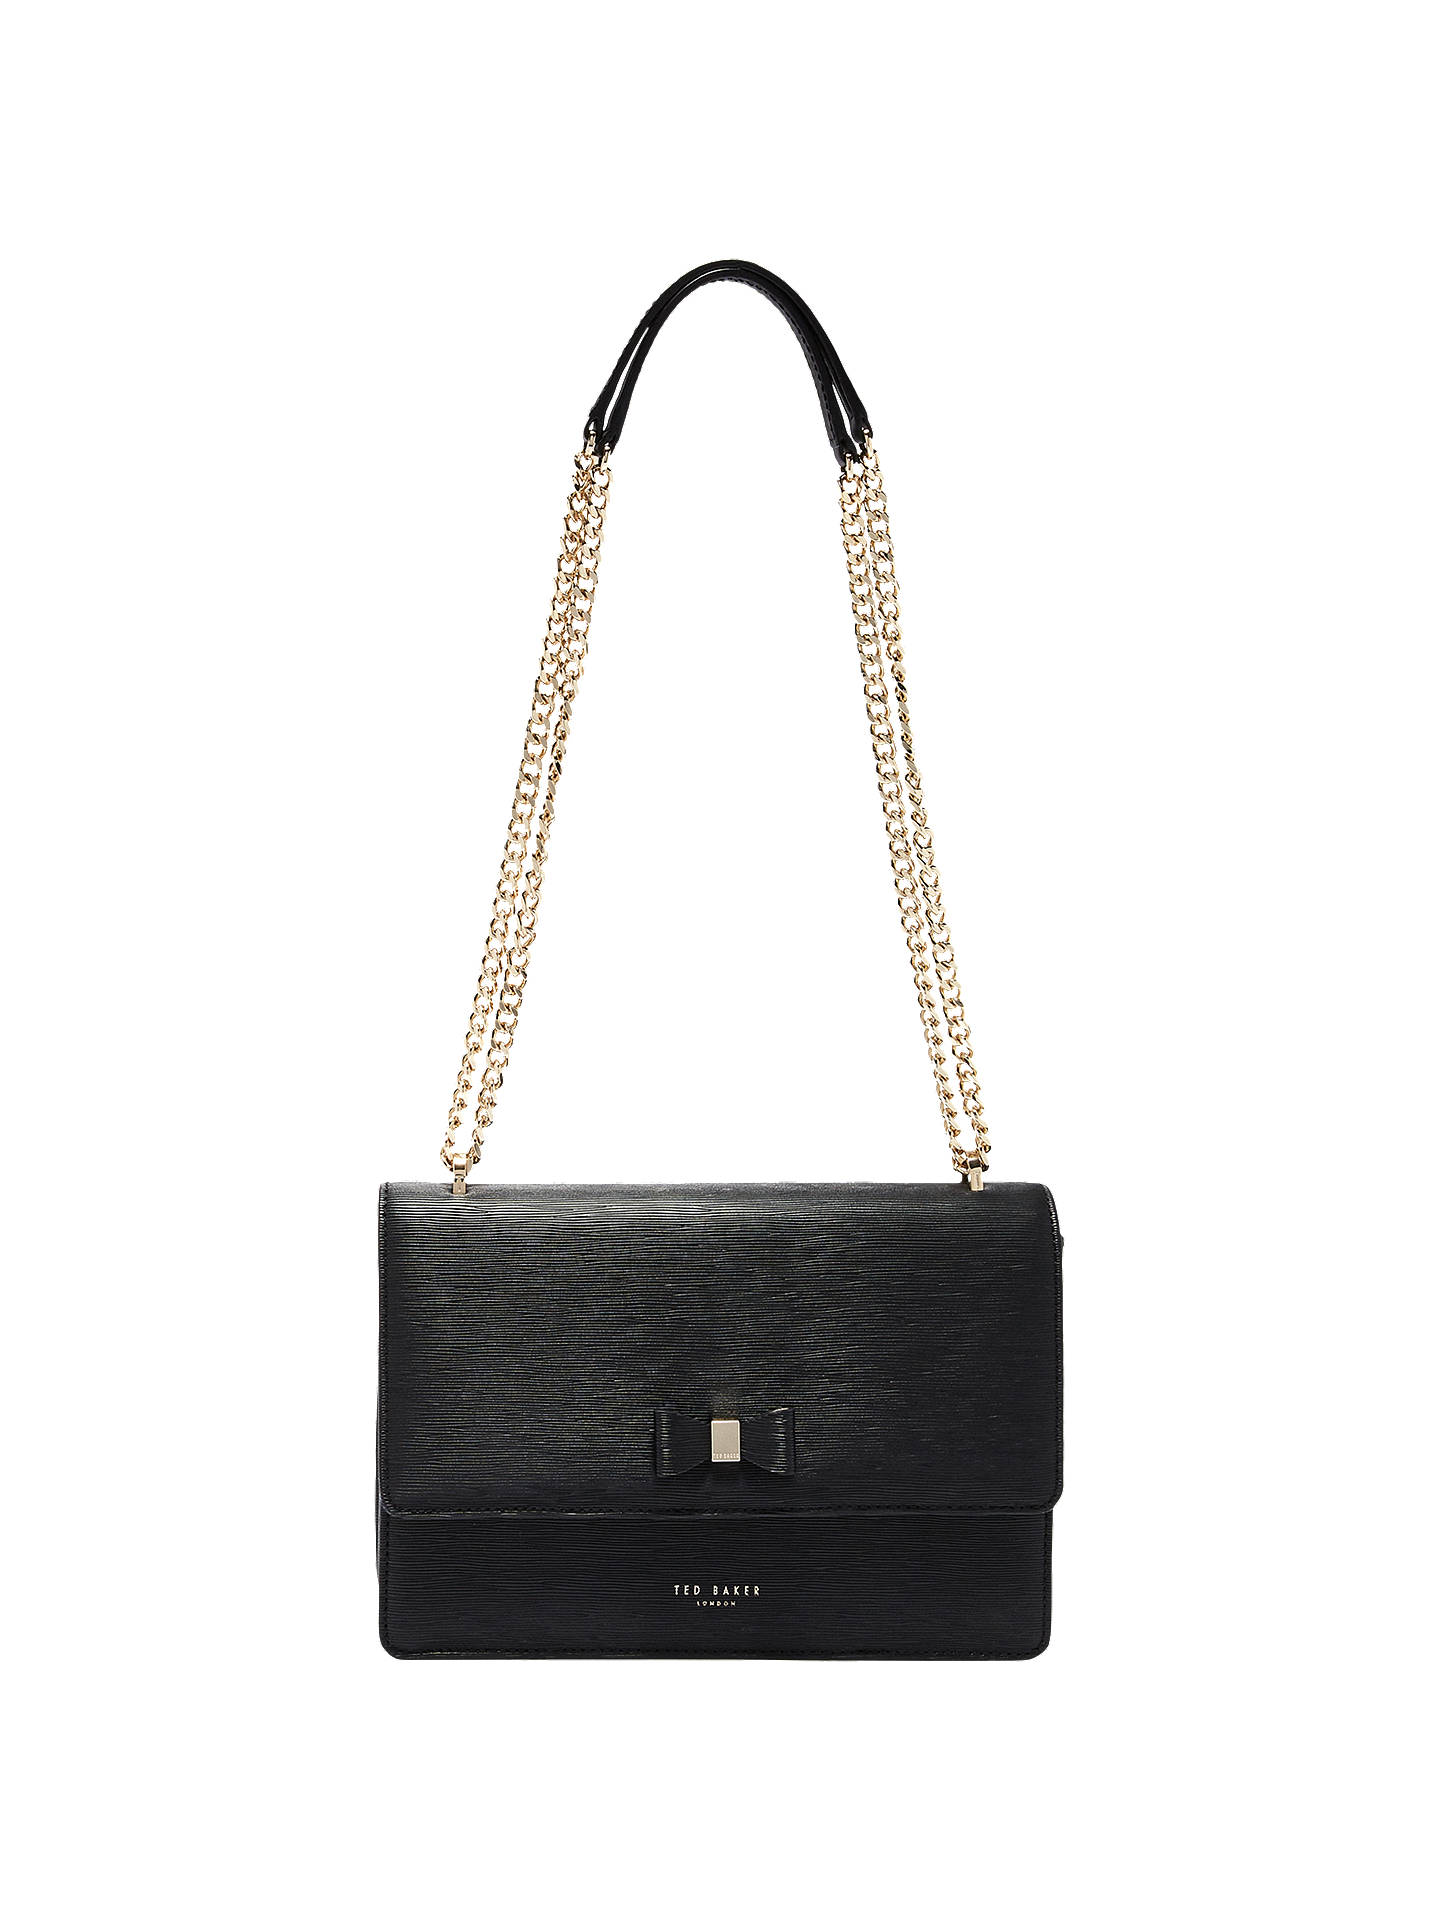 e3ebbef2d0e Buy Ted Baker Delila Bow Leather Cross Body Bag, Black Online at  johnlewis.com ...